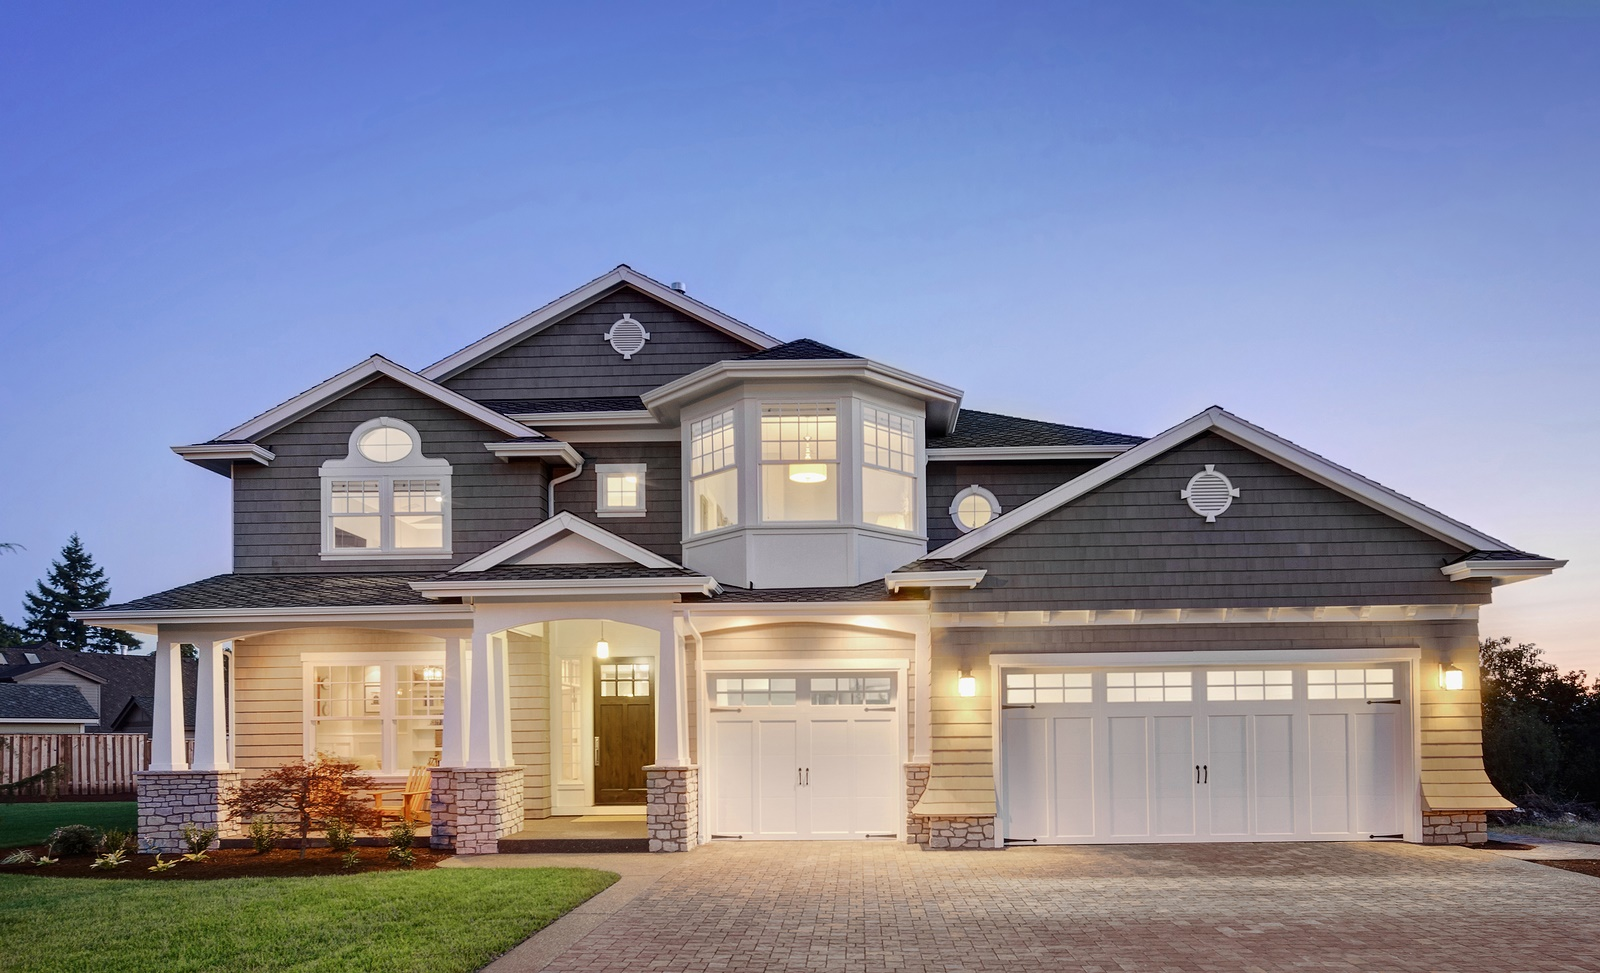 Roofing and exterior work the ottawa home renovator for Design the exterior of your house online free